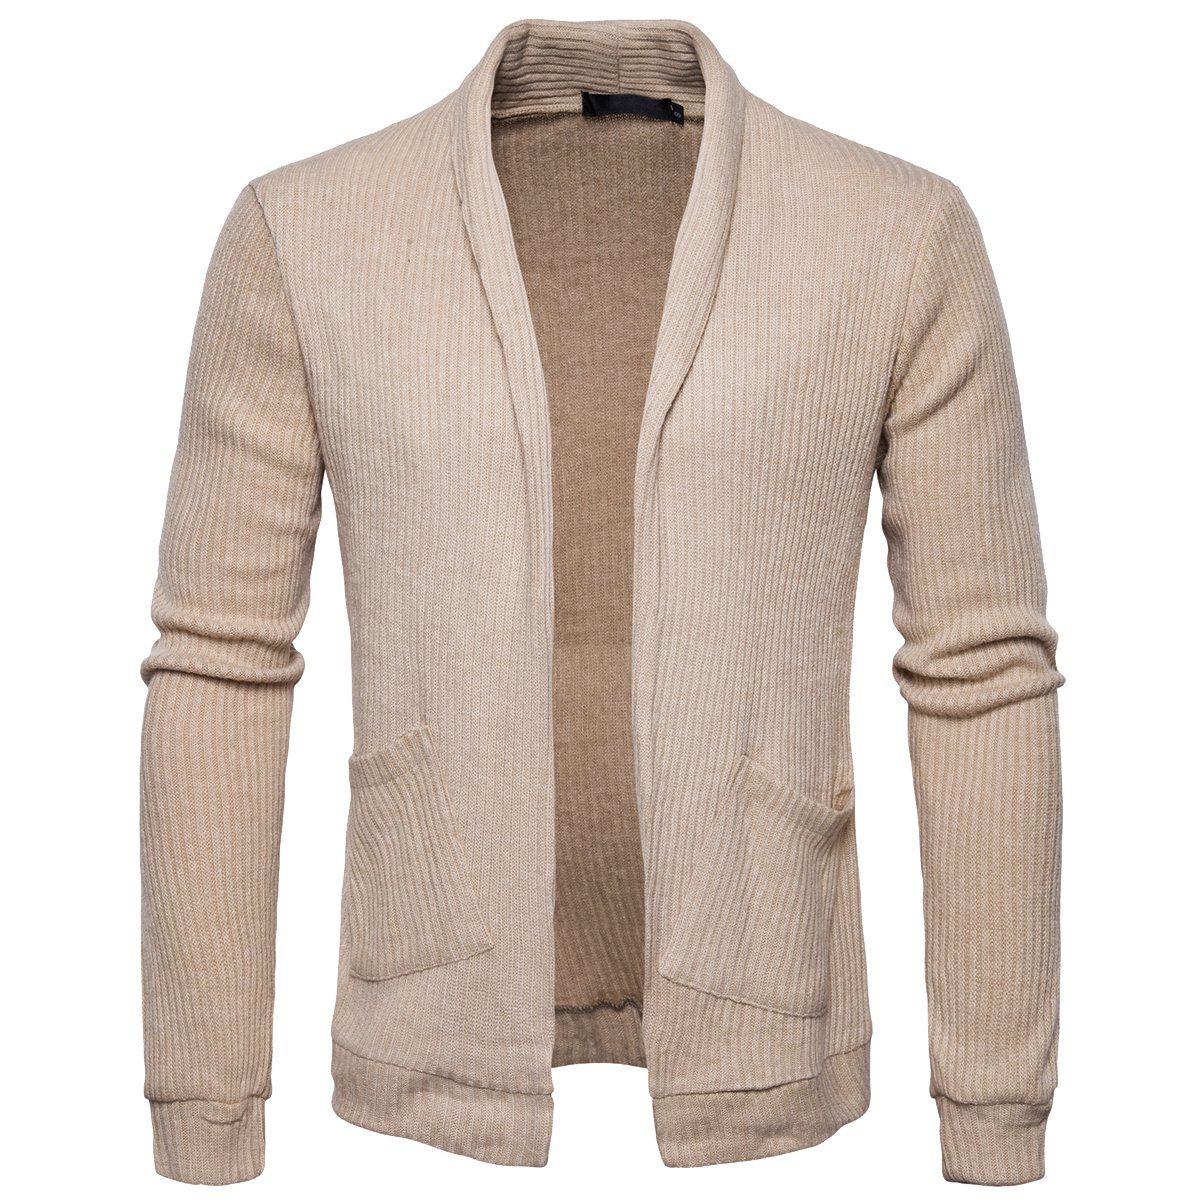 Cottory Men's No Button Pure Color Soft Shawl Collar Cardigan Sweater Brown Large